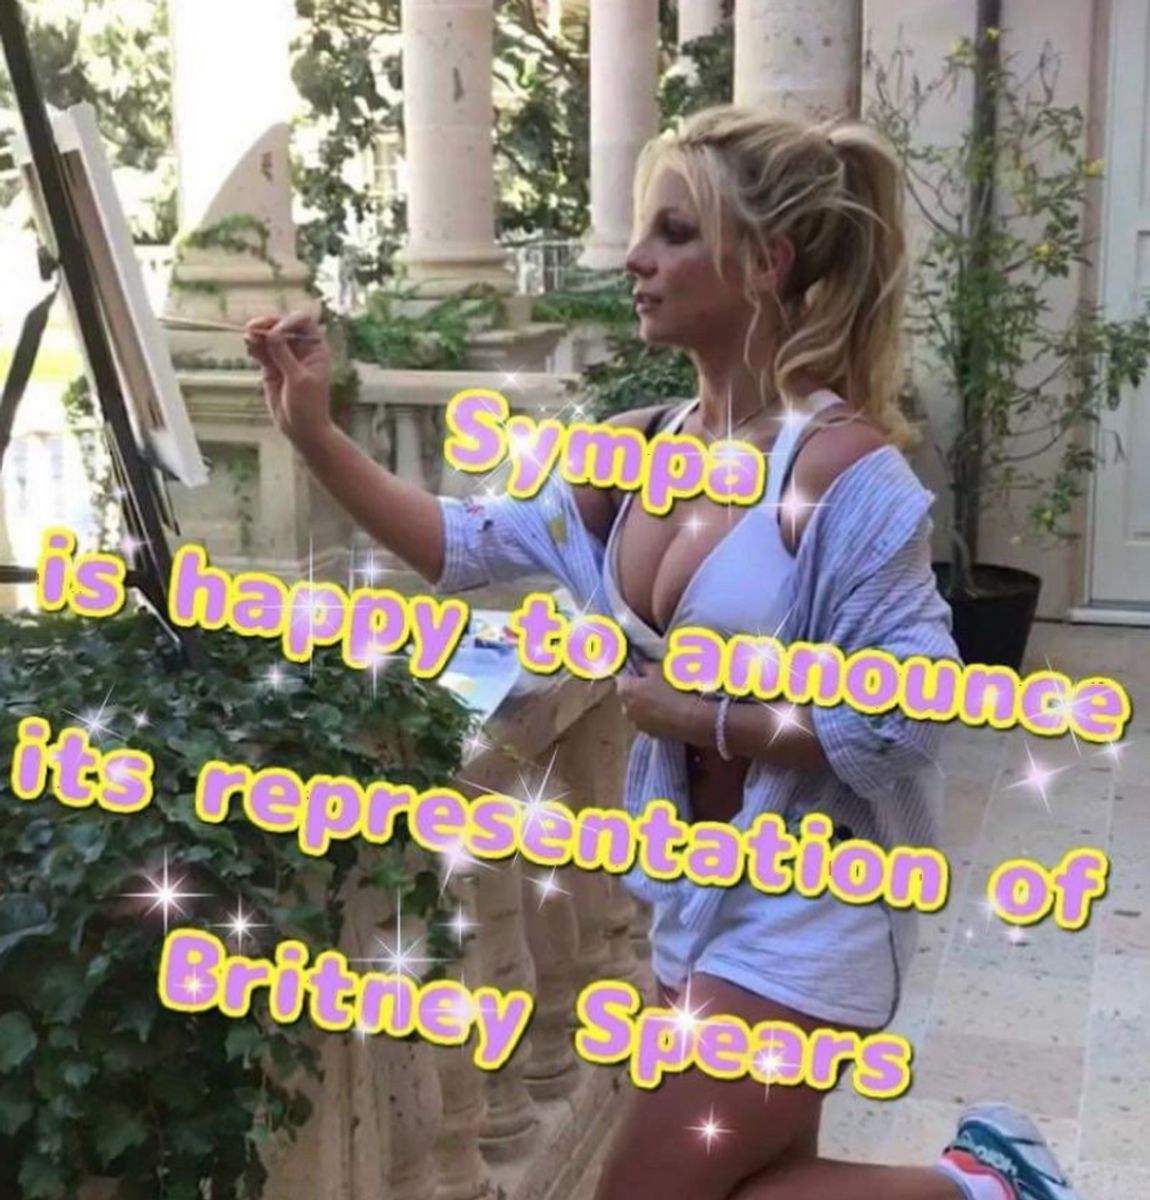 The Internet Is Abuzz With the News That Britney Spears Is Getting Her First Gallery Show. But It's All a Lie